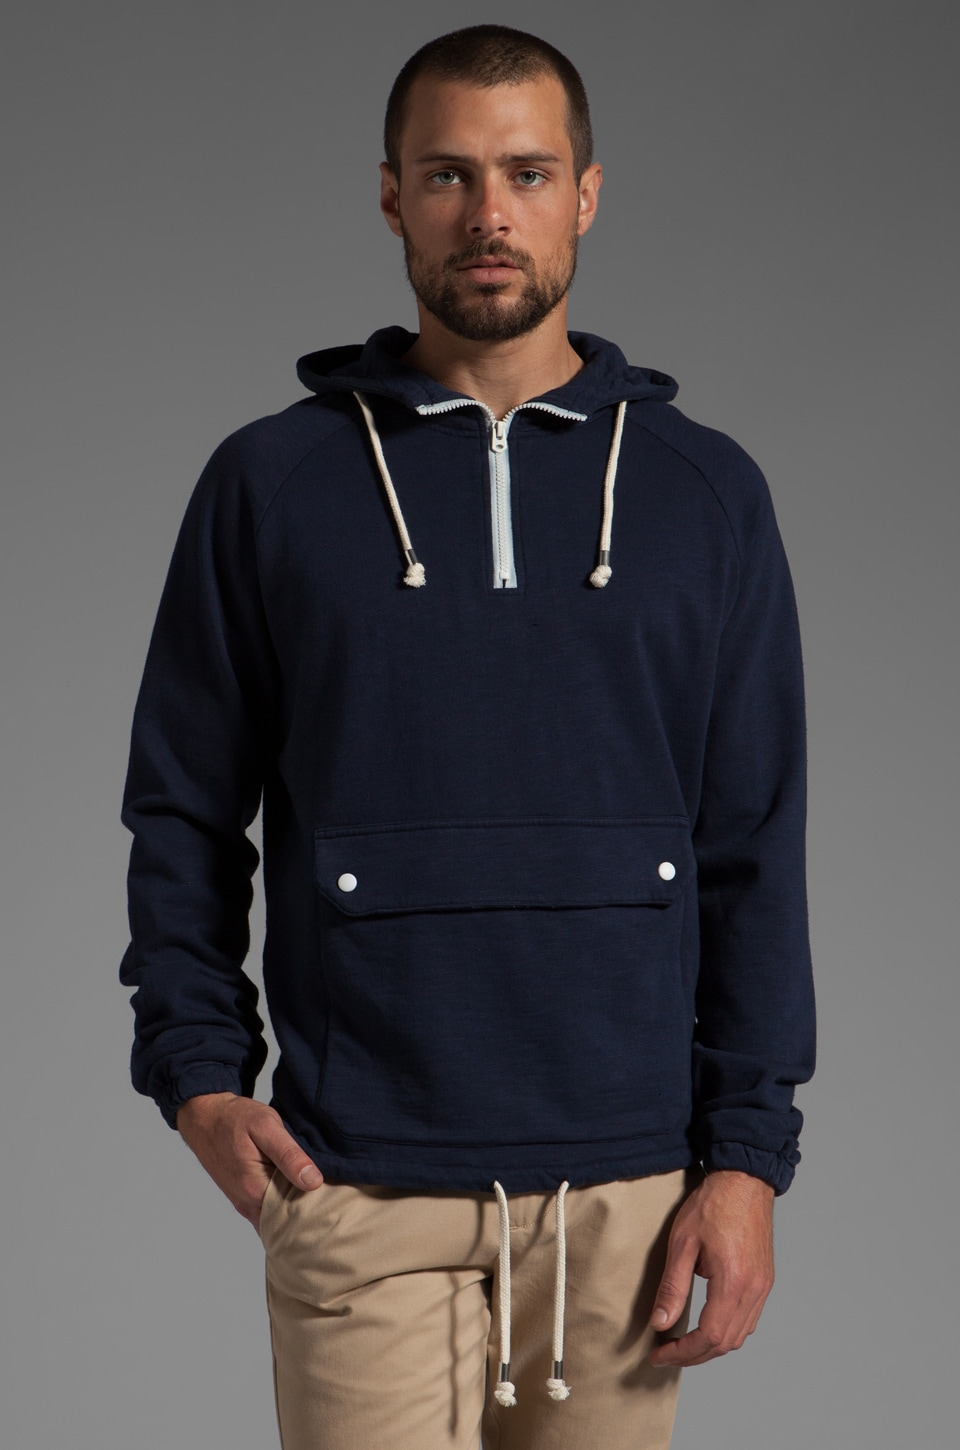 Shades of Grey by Micah Cohen Fleece Anorak in Navy